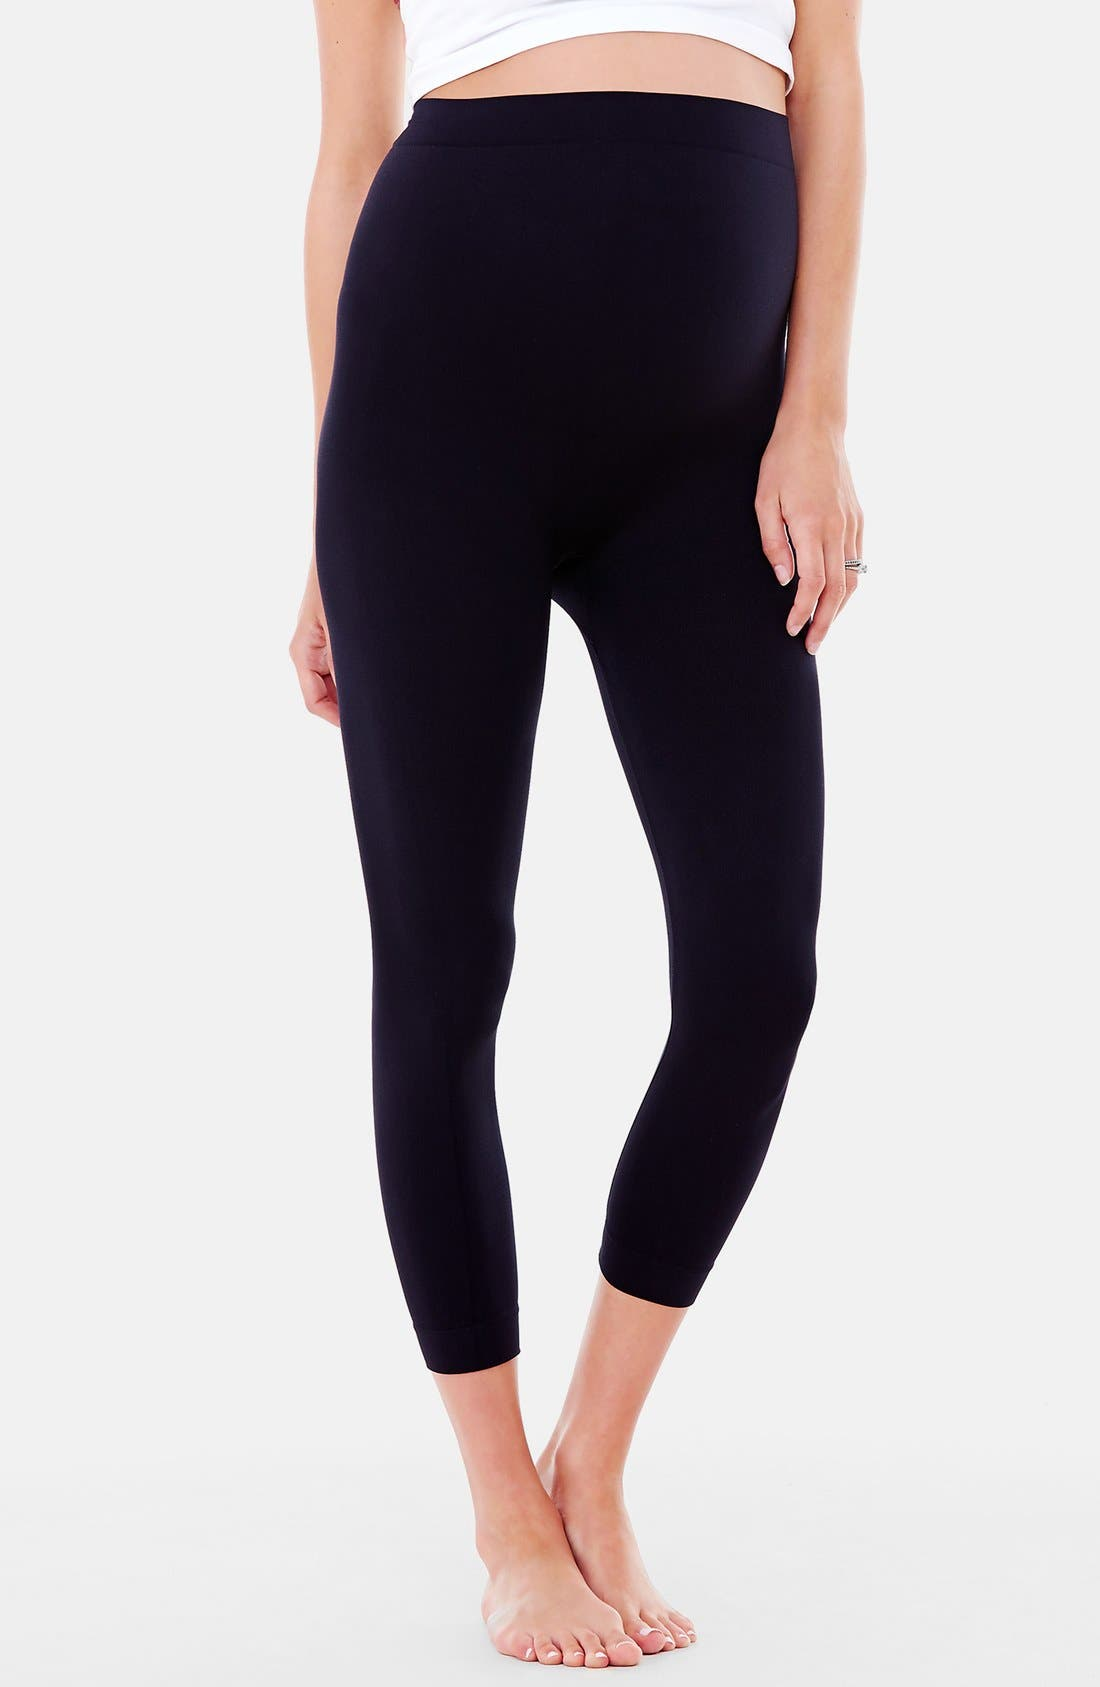 INGRID & ISABEL® Seamless Maternity Capri Leggings